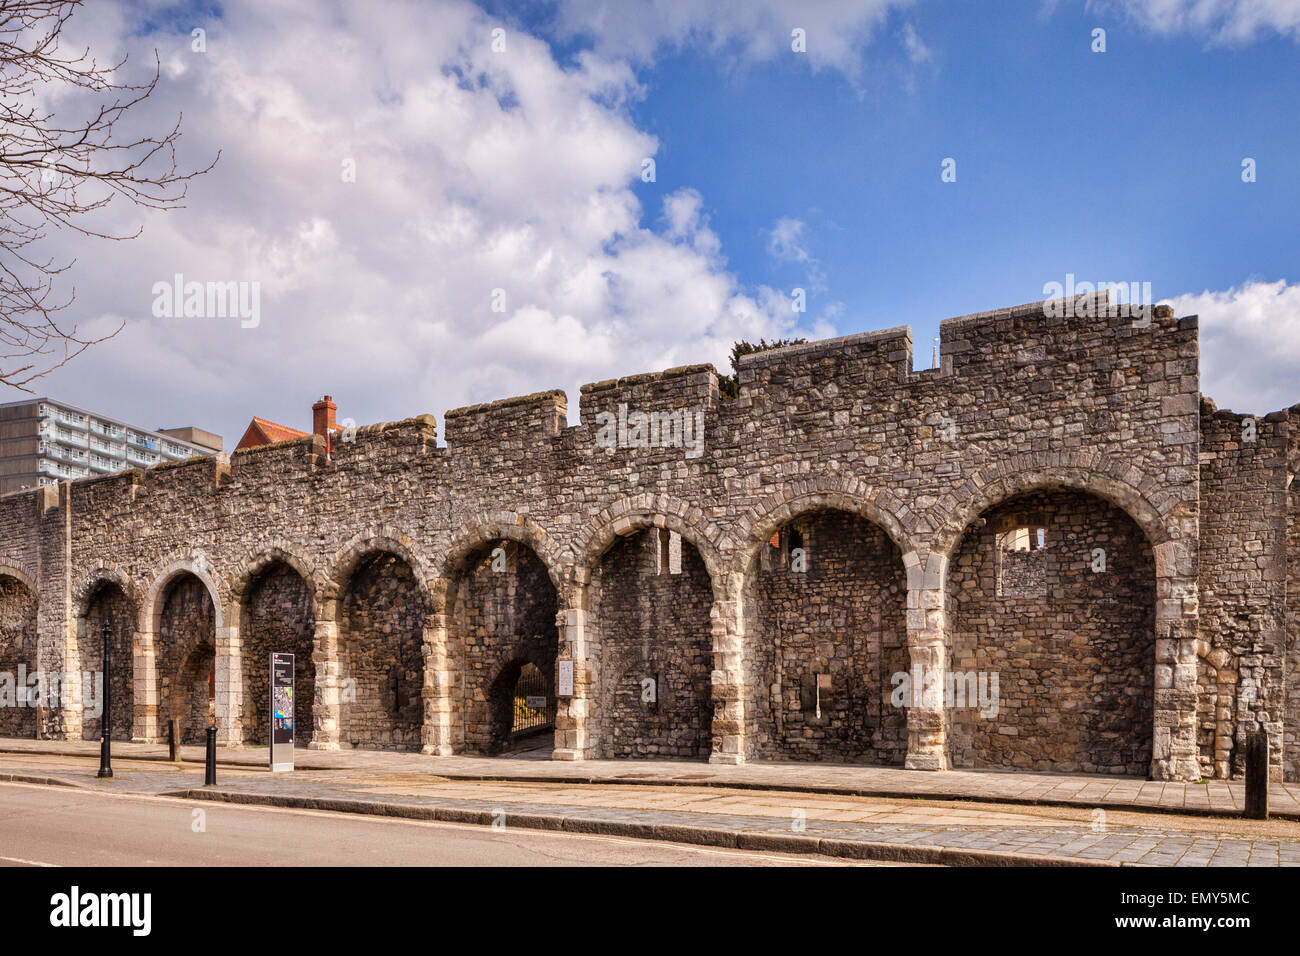 A section of the old city walls of the city of Southampton, Hampshire, England. - Stock Image